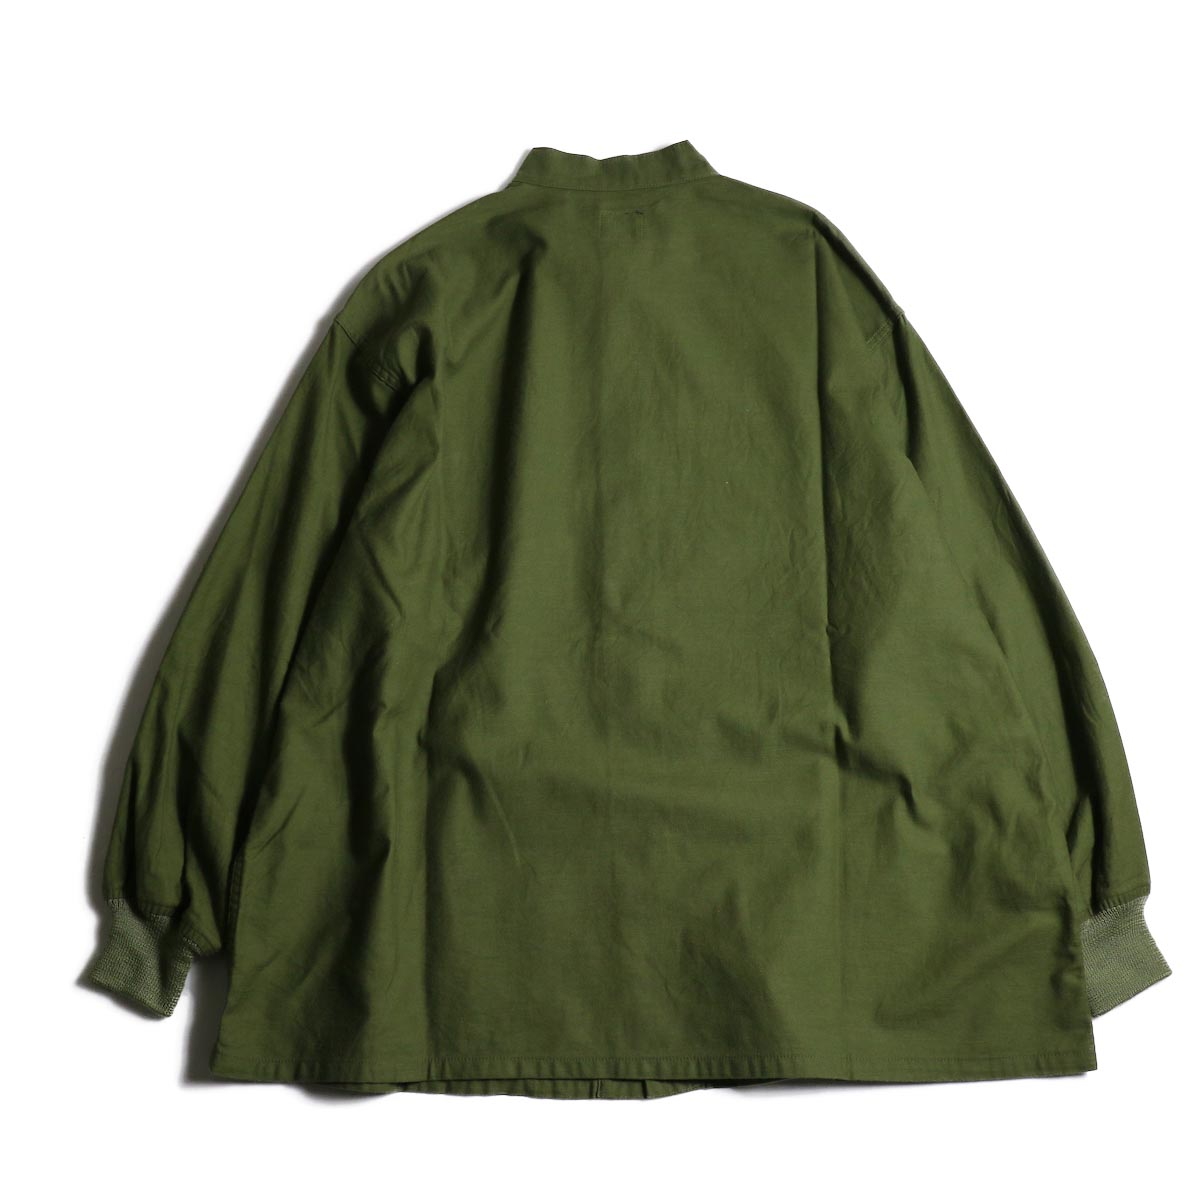 Needles / S.C. ARMY SHIRT - BACK SATEEN (Olive)背面